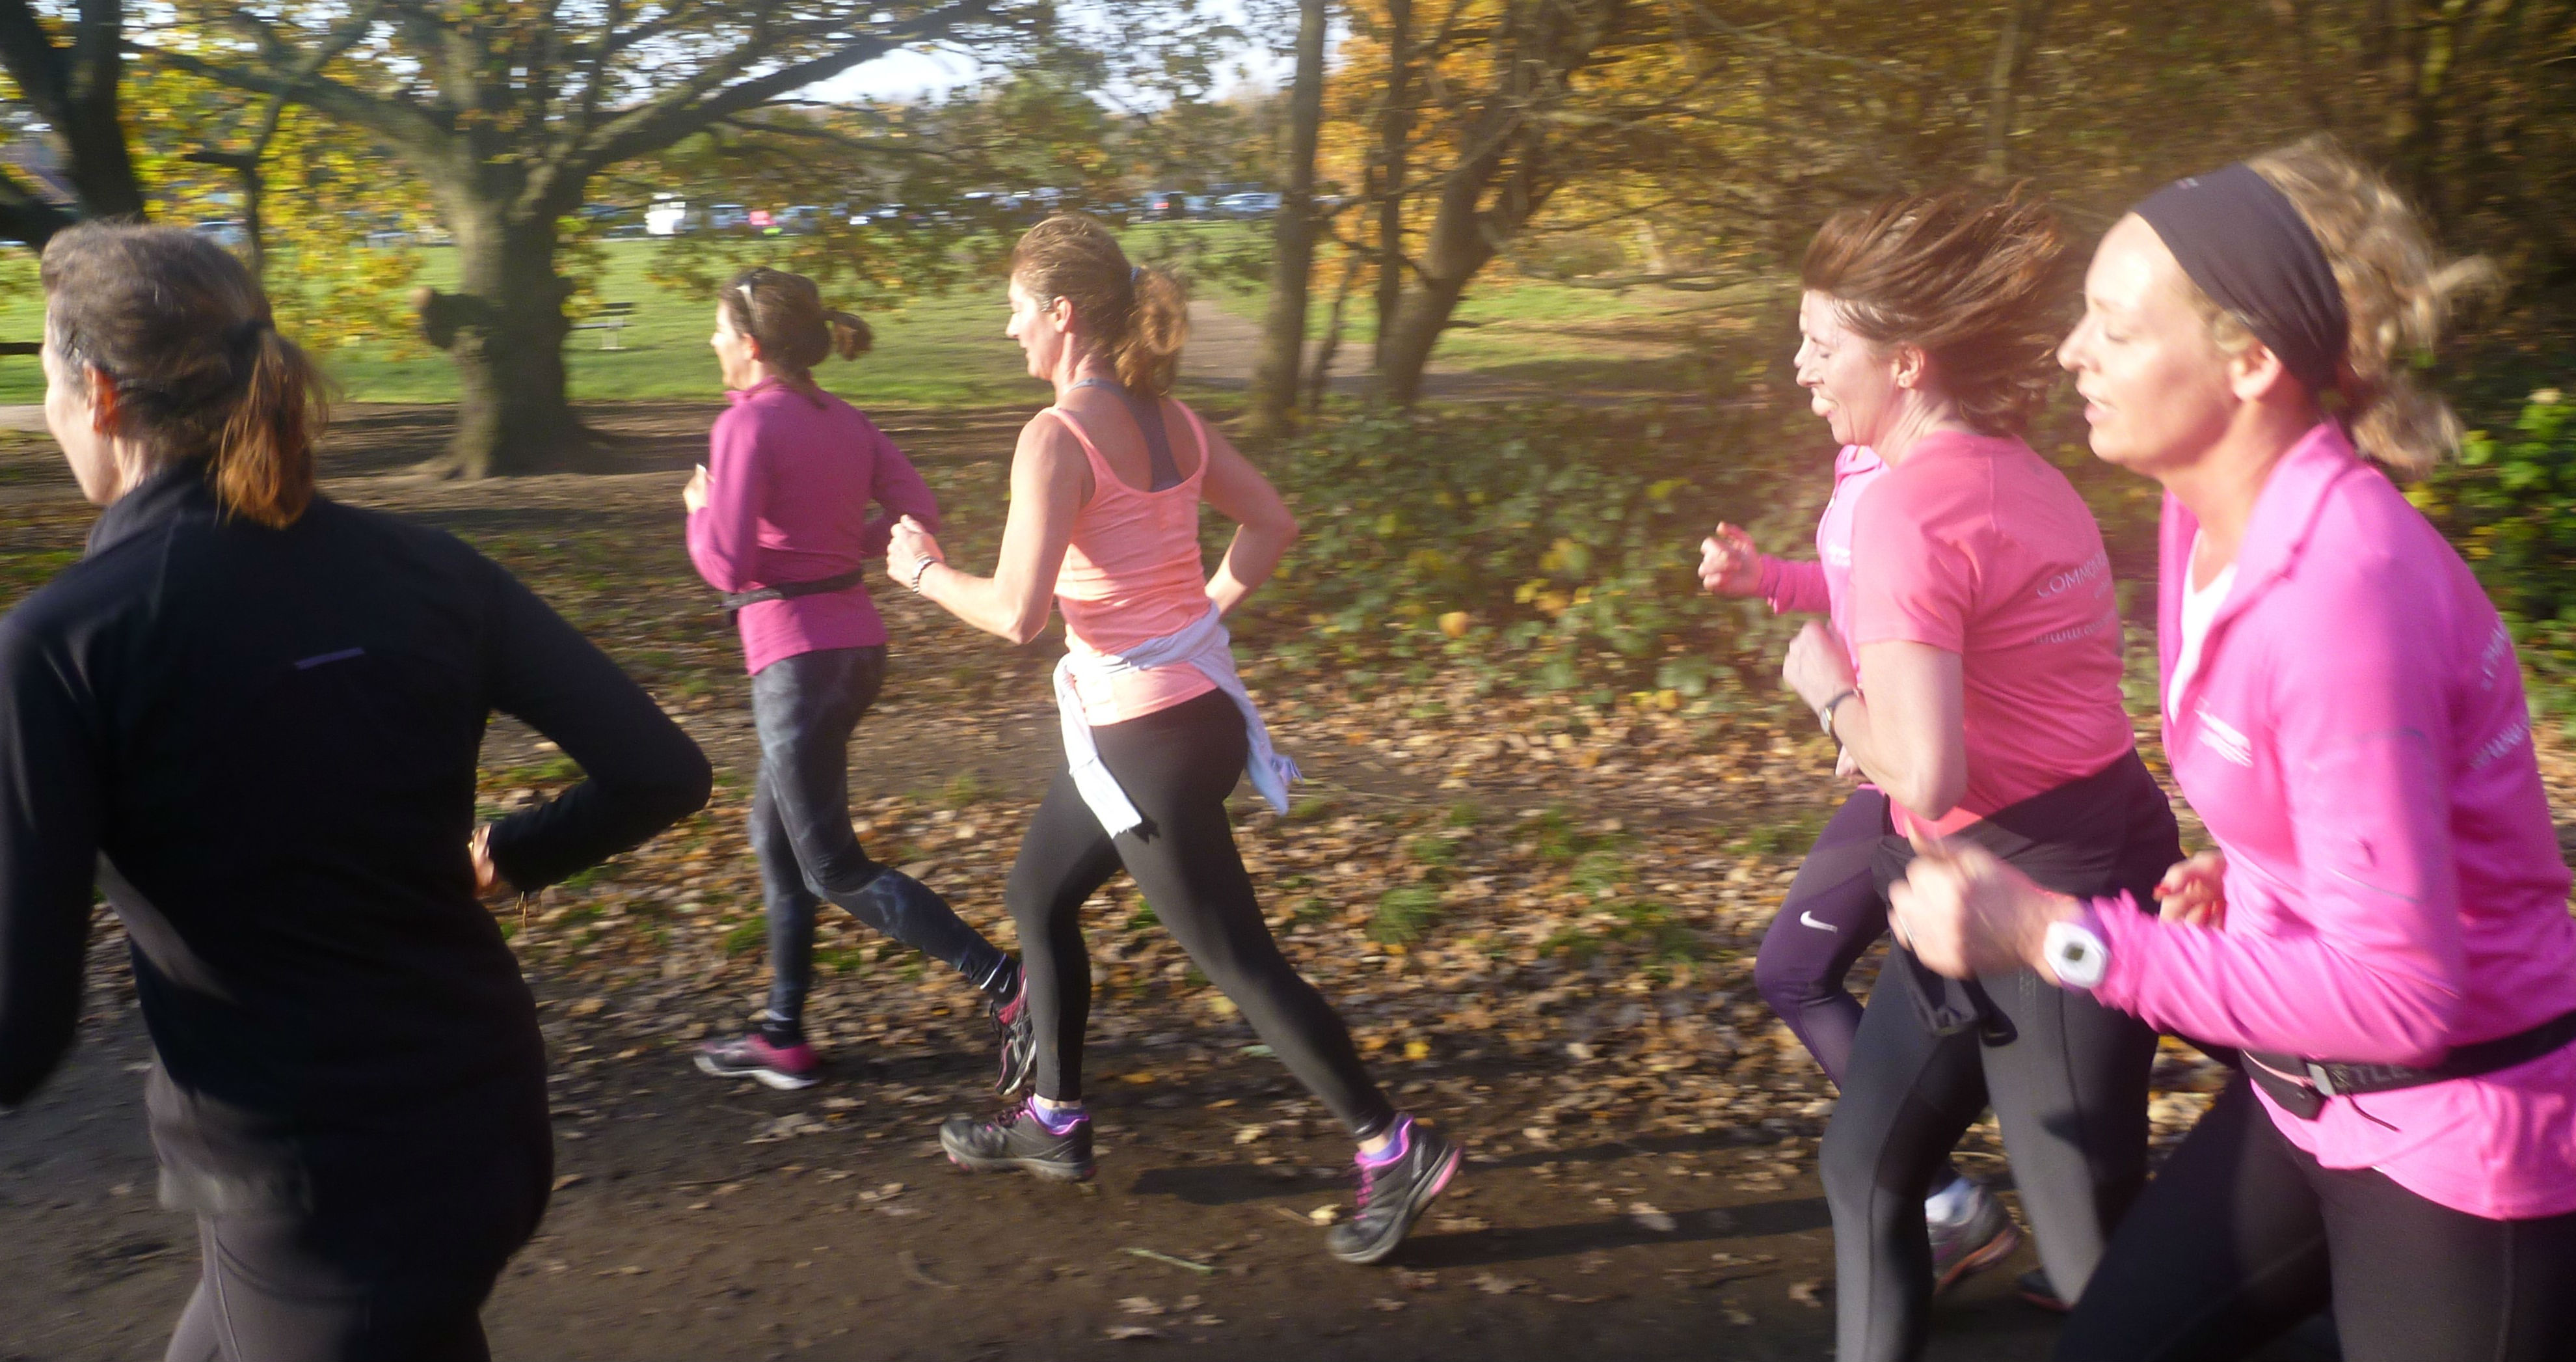 Angeline Ball Tits social runs: relaxed, enjoyable, for all abilities |